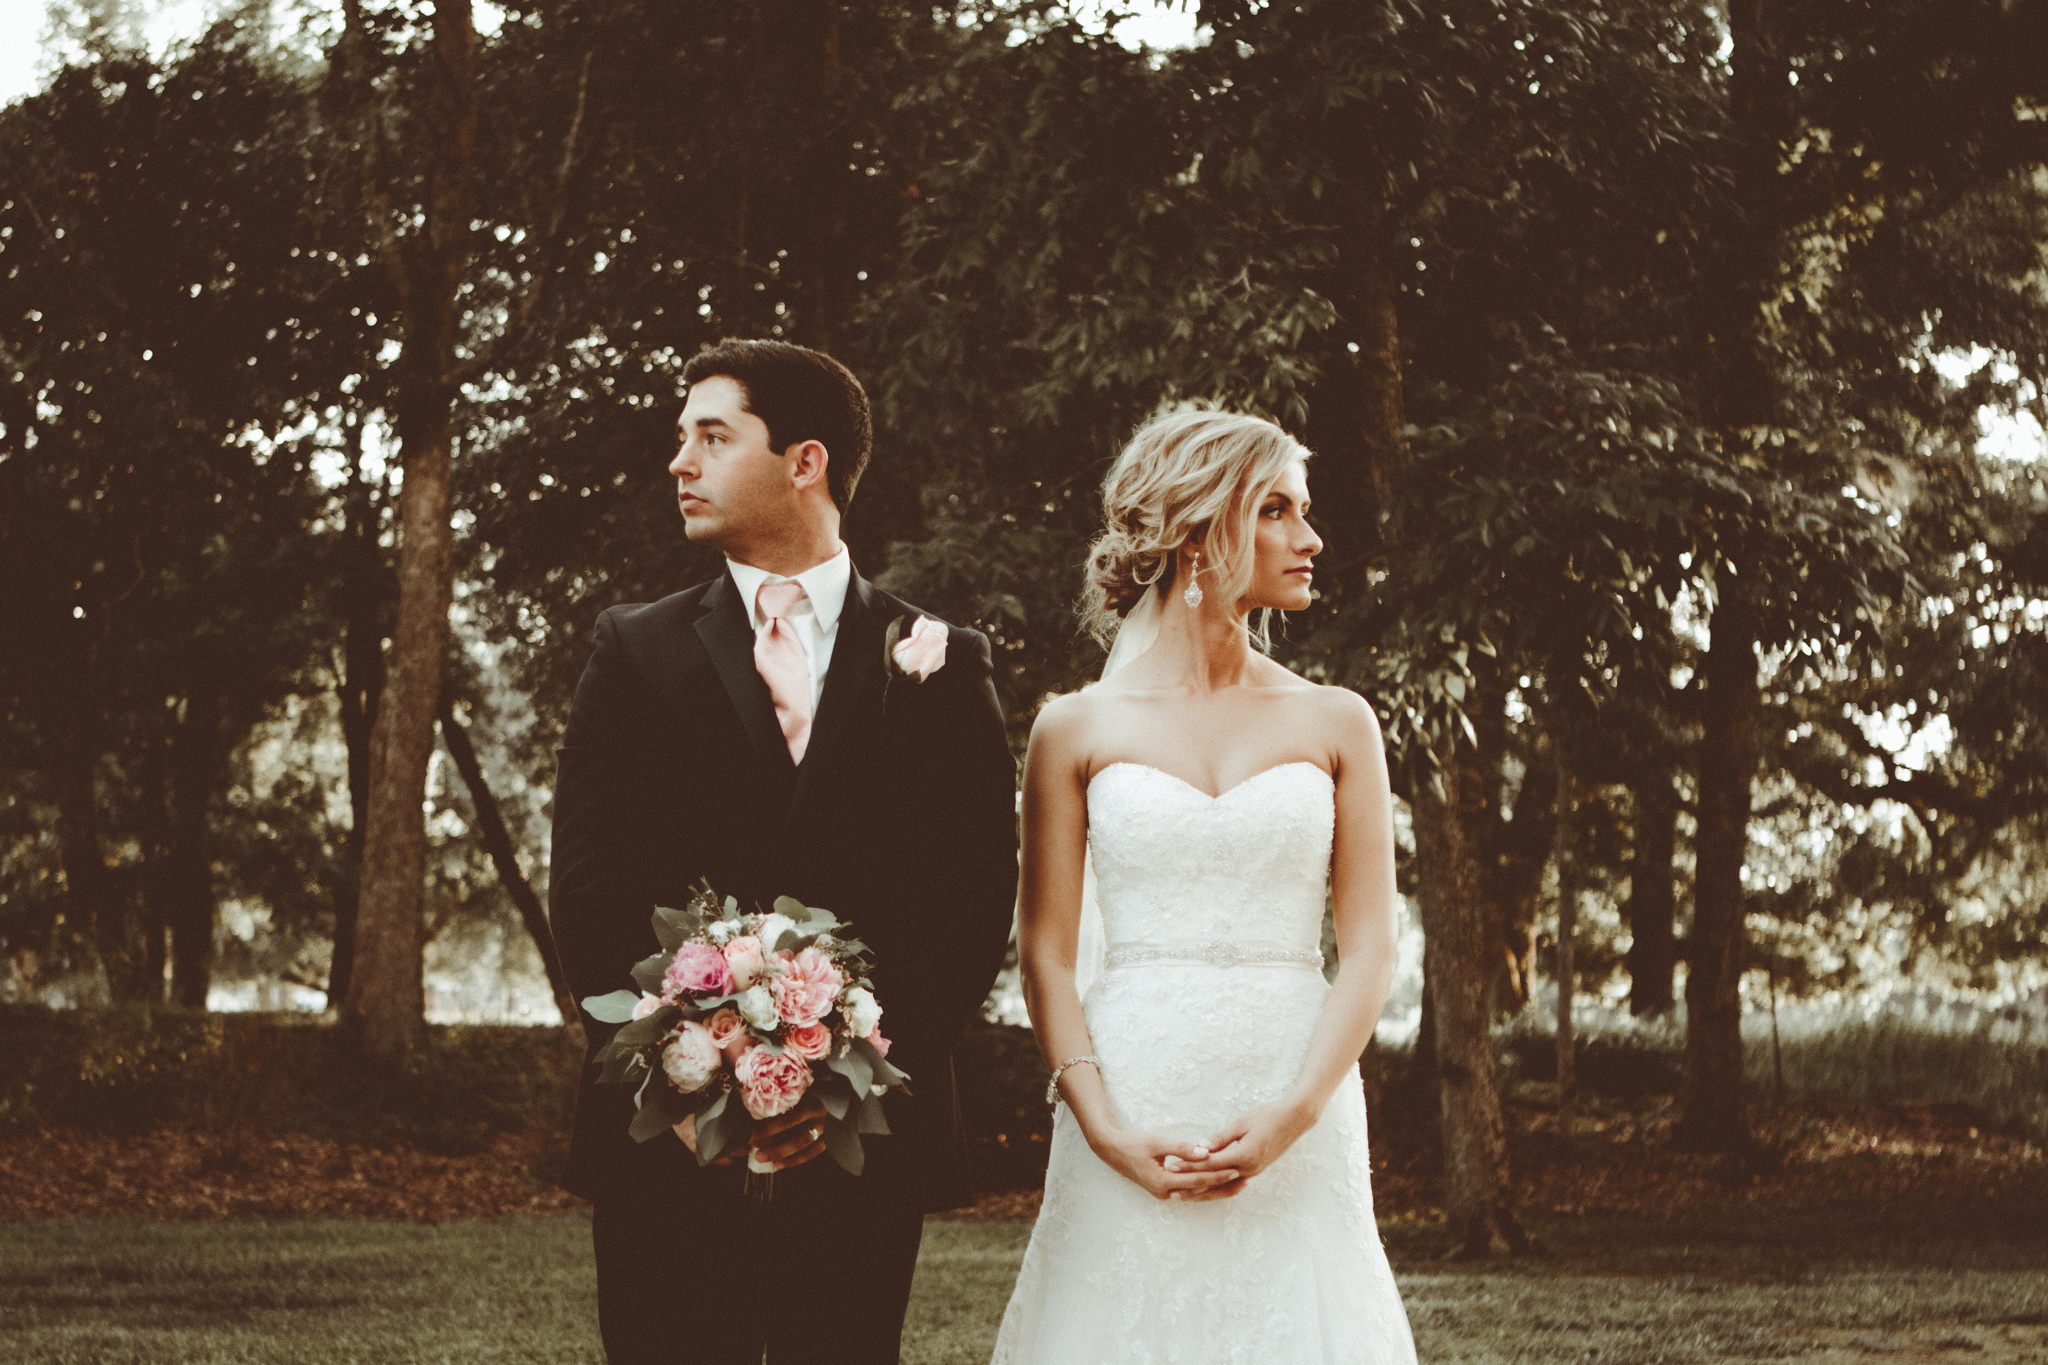 vintage film, old time bridal portrait. Josh + Alora | Classic Denham Springs Wedding. Photos by Christi Childs with The Picture People LA photography Baton Rouge, Louisiana